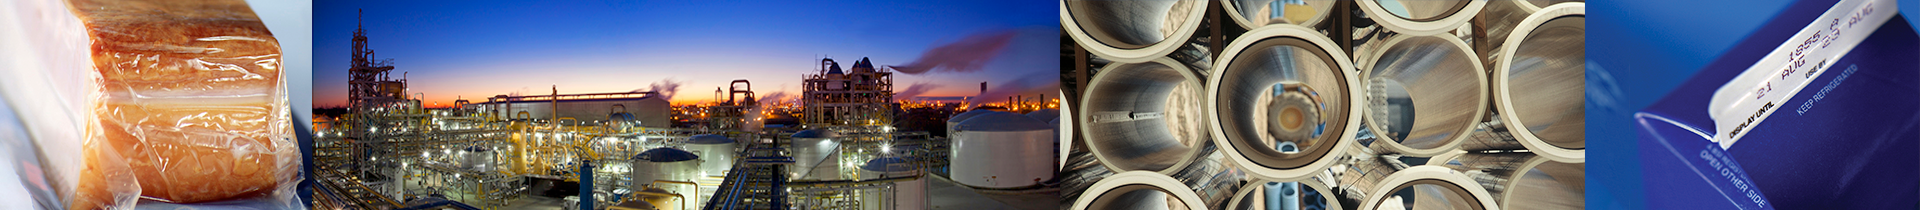 Westlake Chemical Dedicates New Geismar, Louisiana Chlor-Alkali Plant